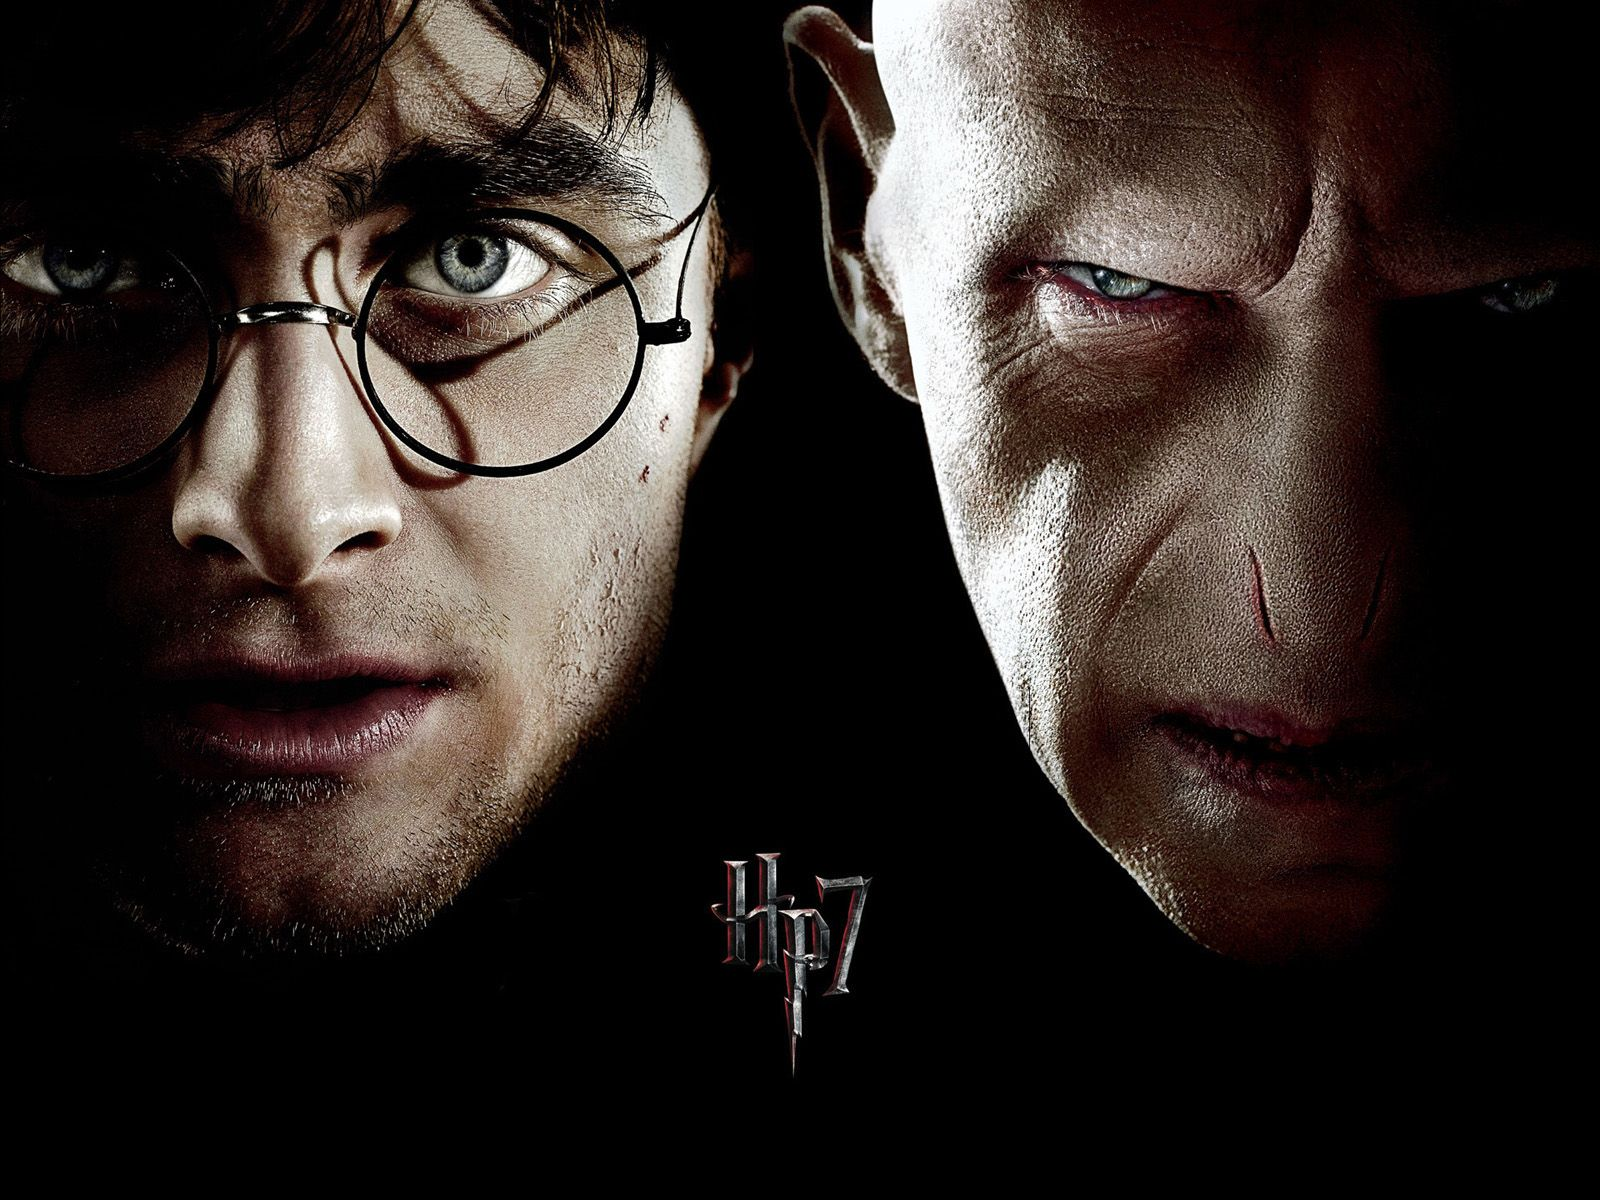 5double harry potter voldemort hp7 1600x12001